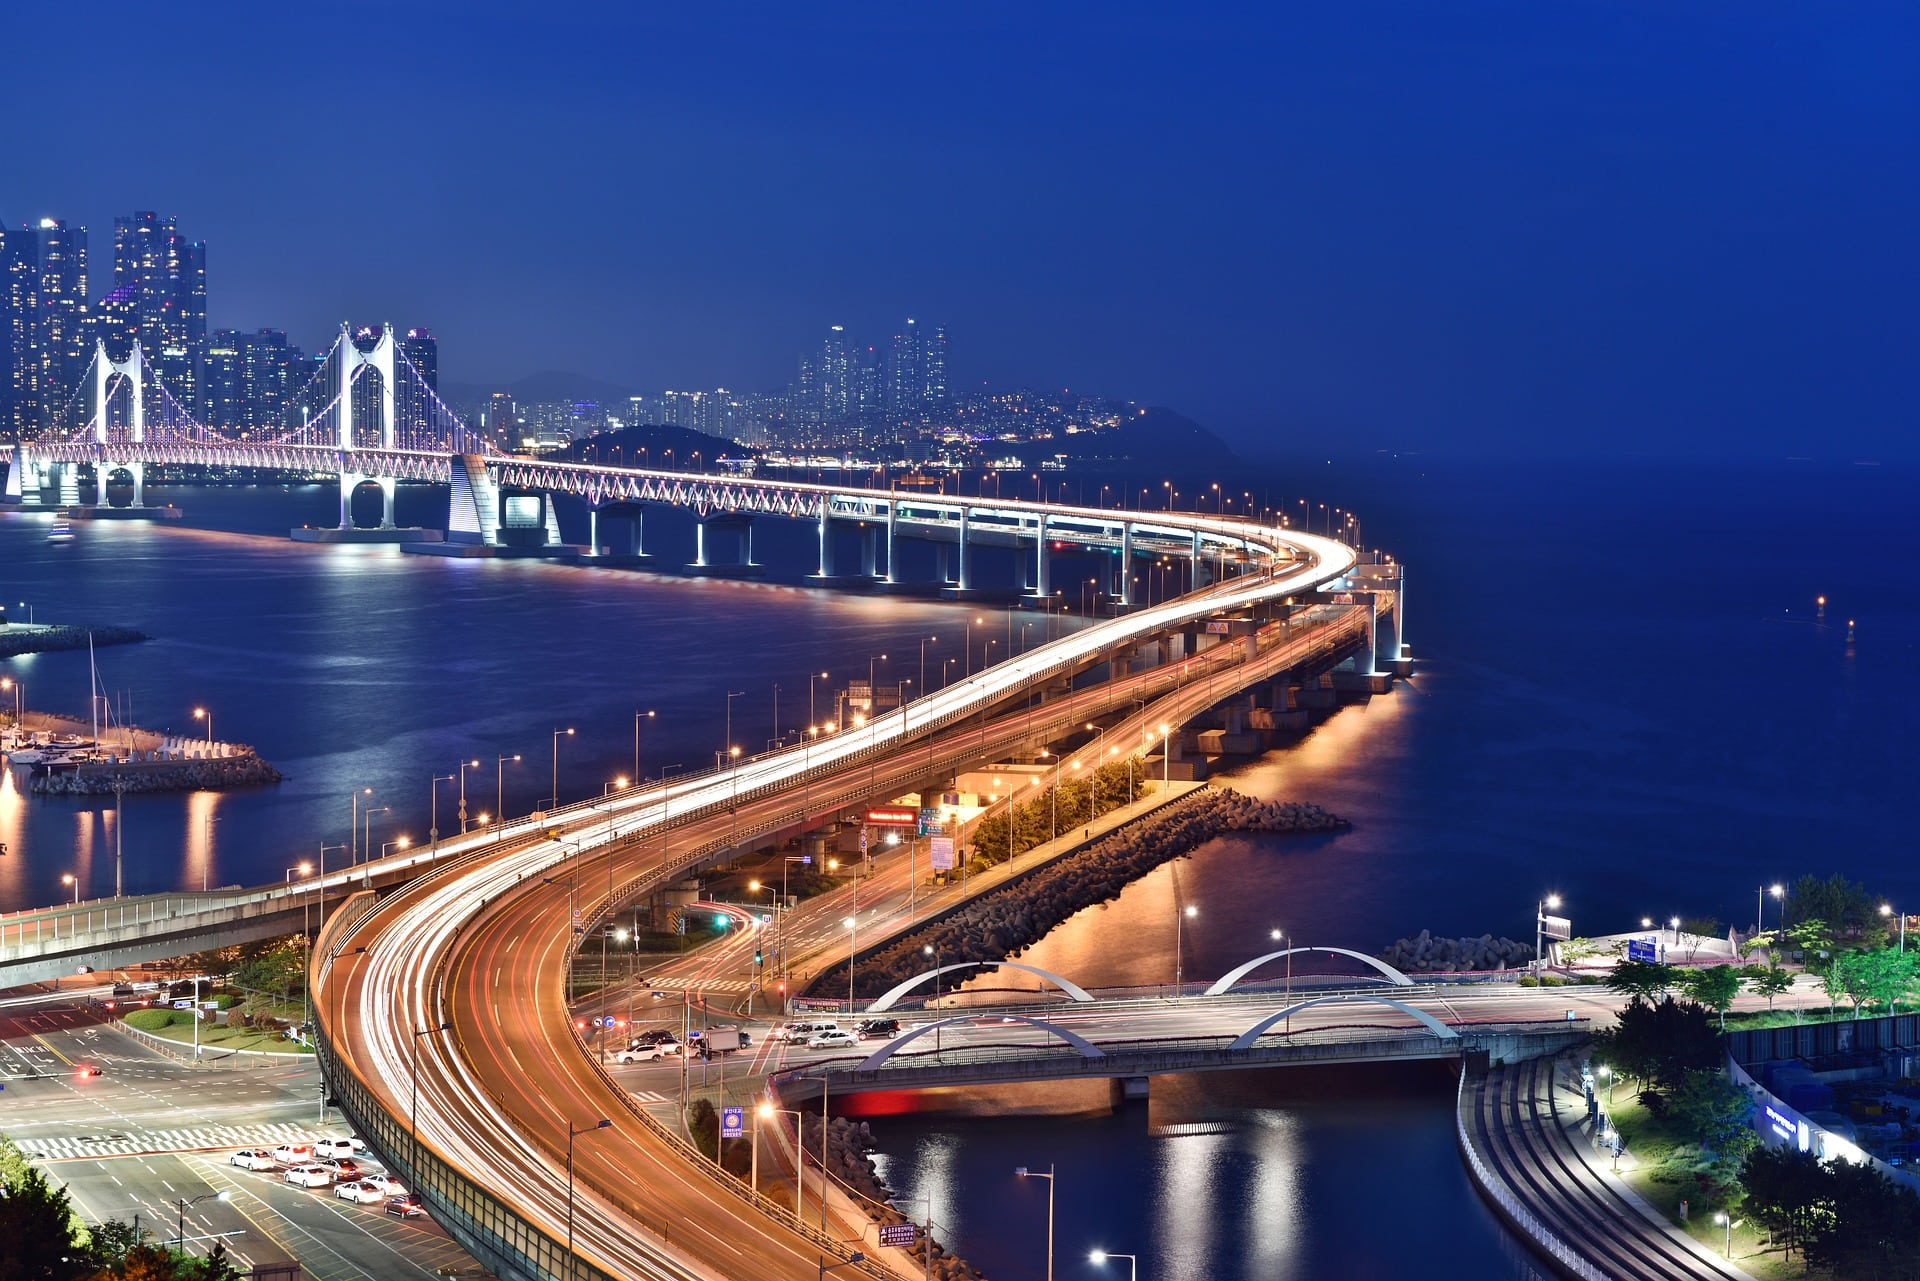 Diamond Bridge Gwangandaegyo Bridge Busan at night